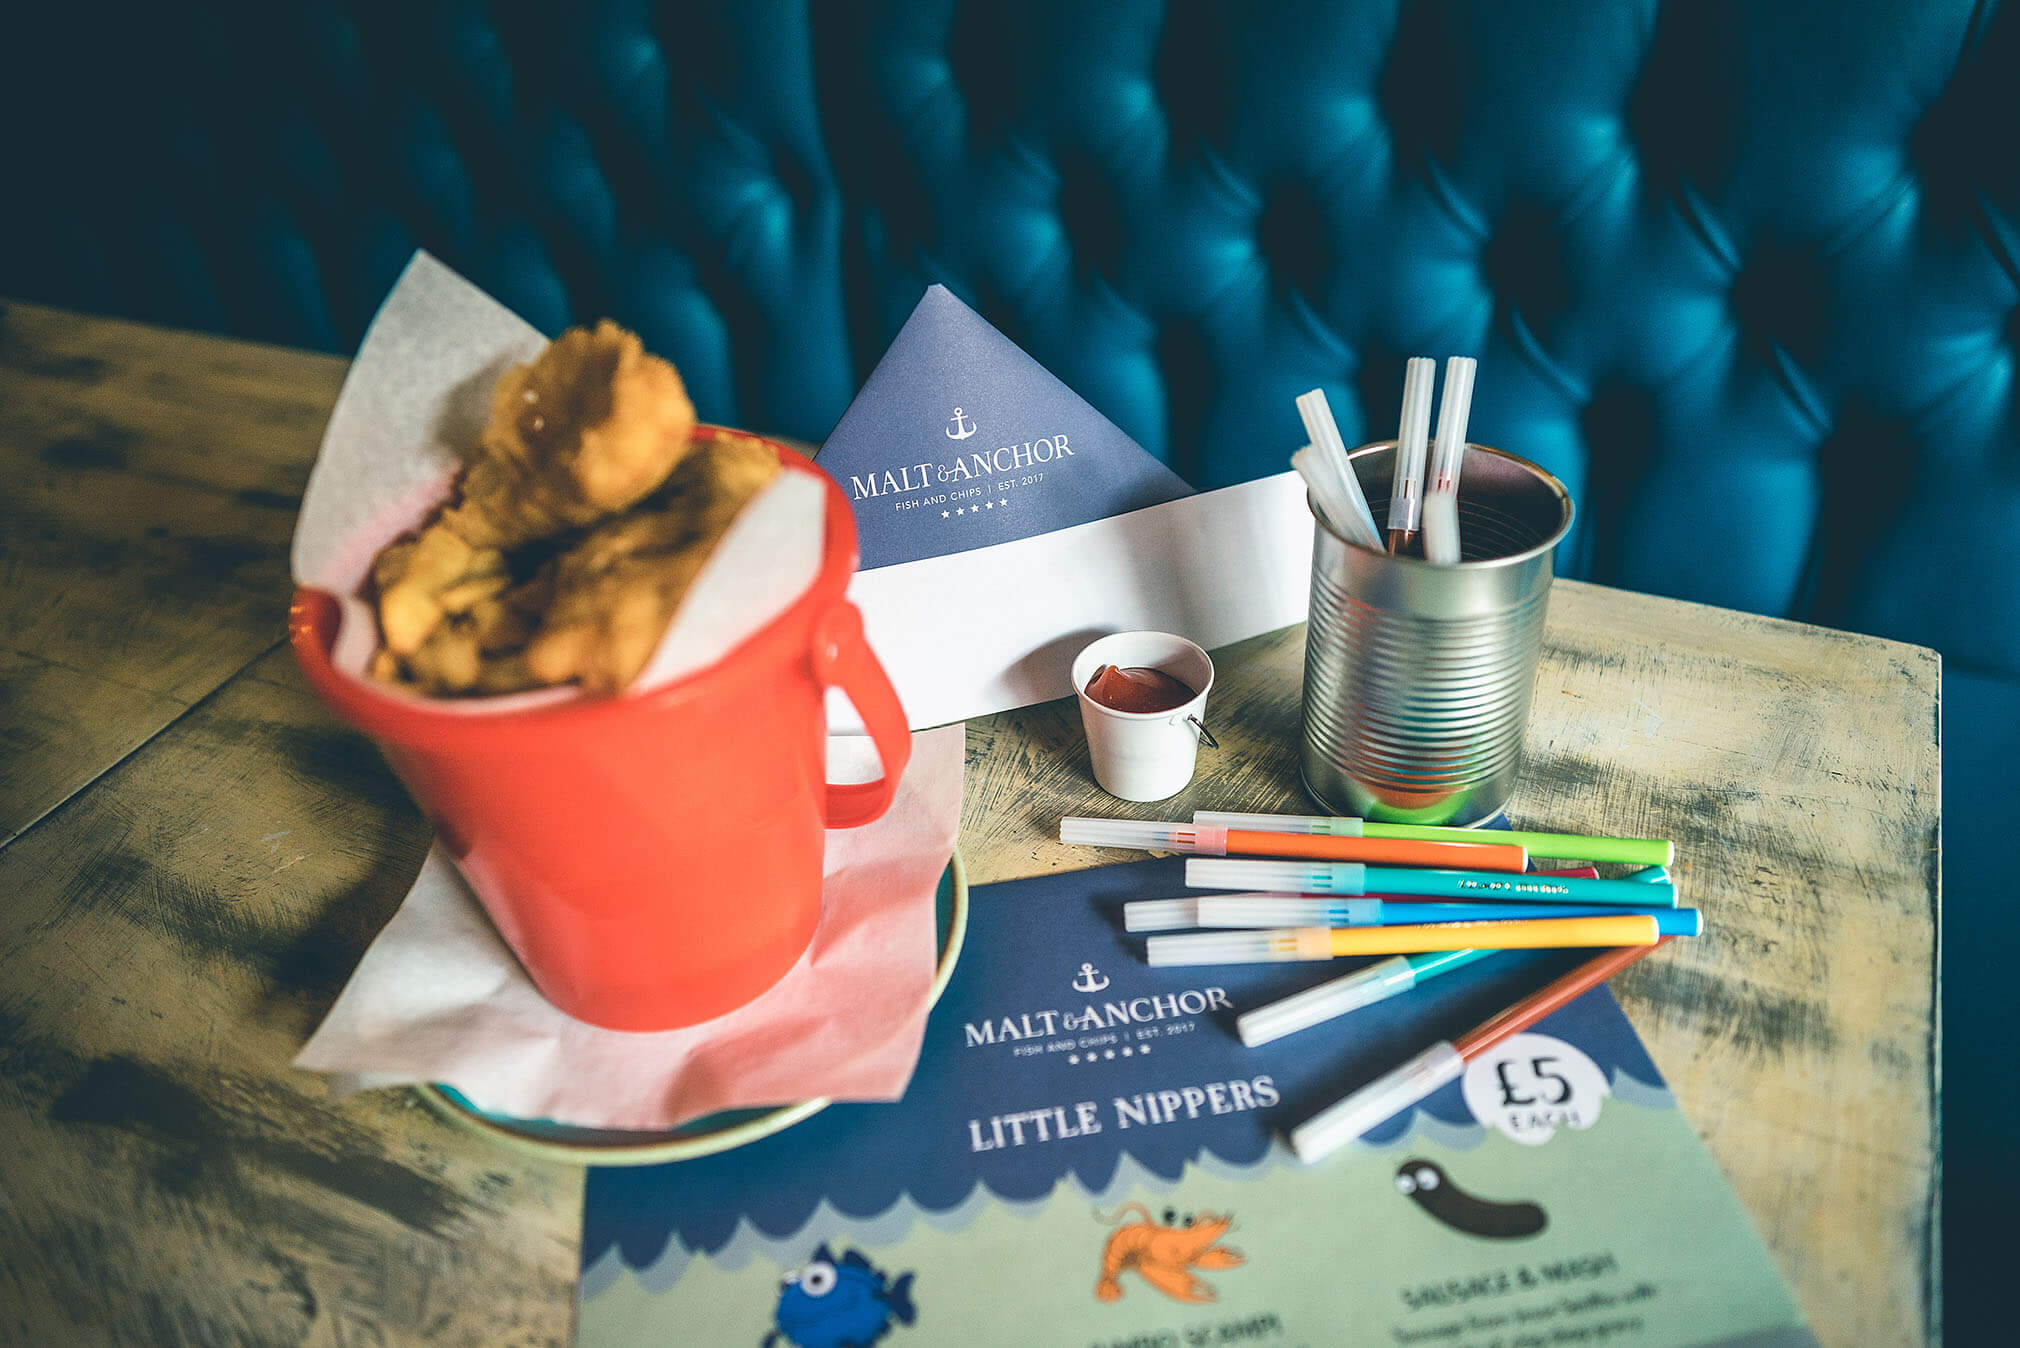 Malt anchor fish and chips to eat in or take away in for Anchor fish and chips